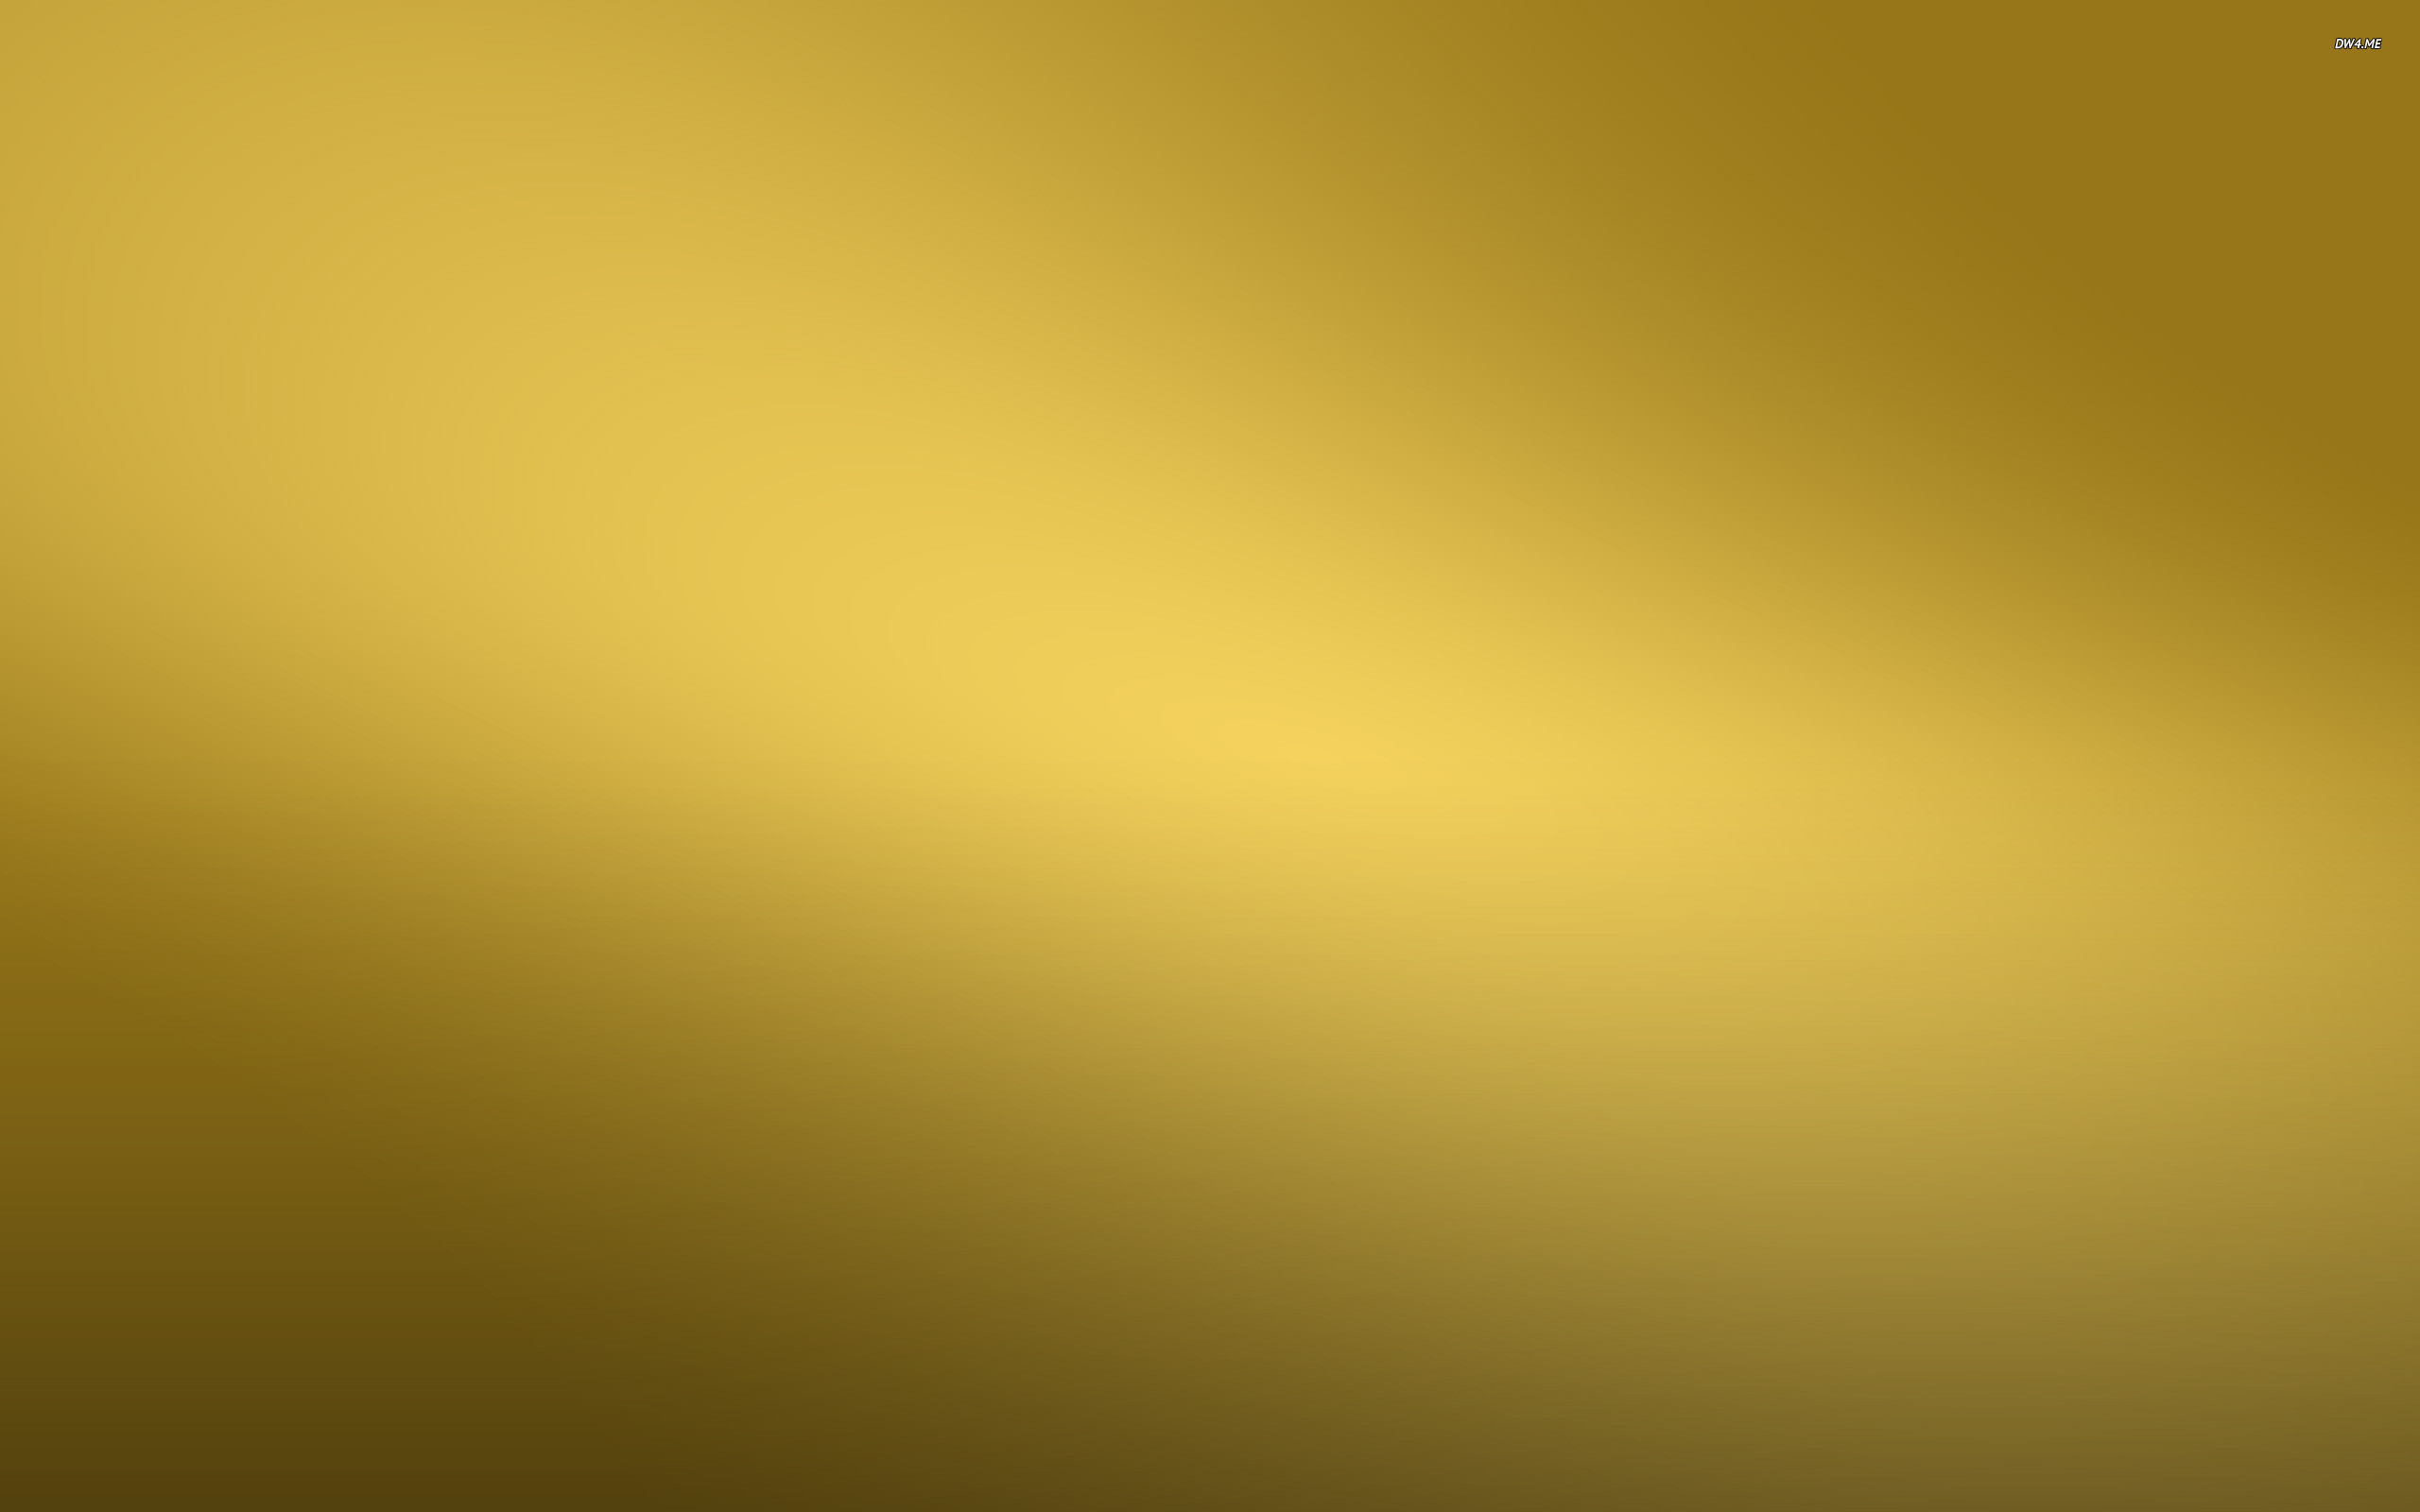 Gold Color Background (33+ images)